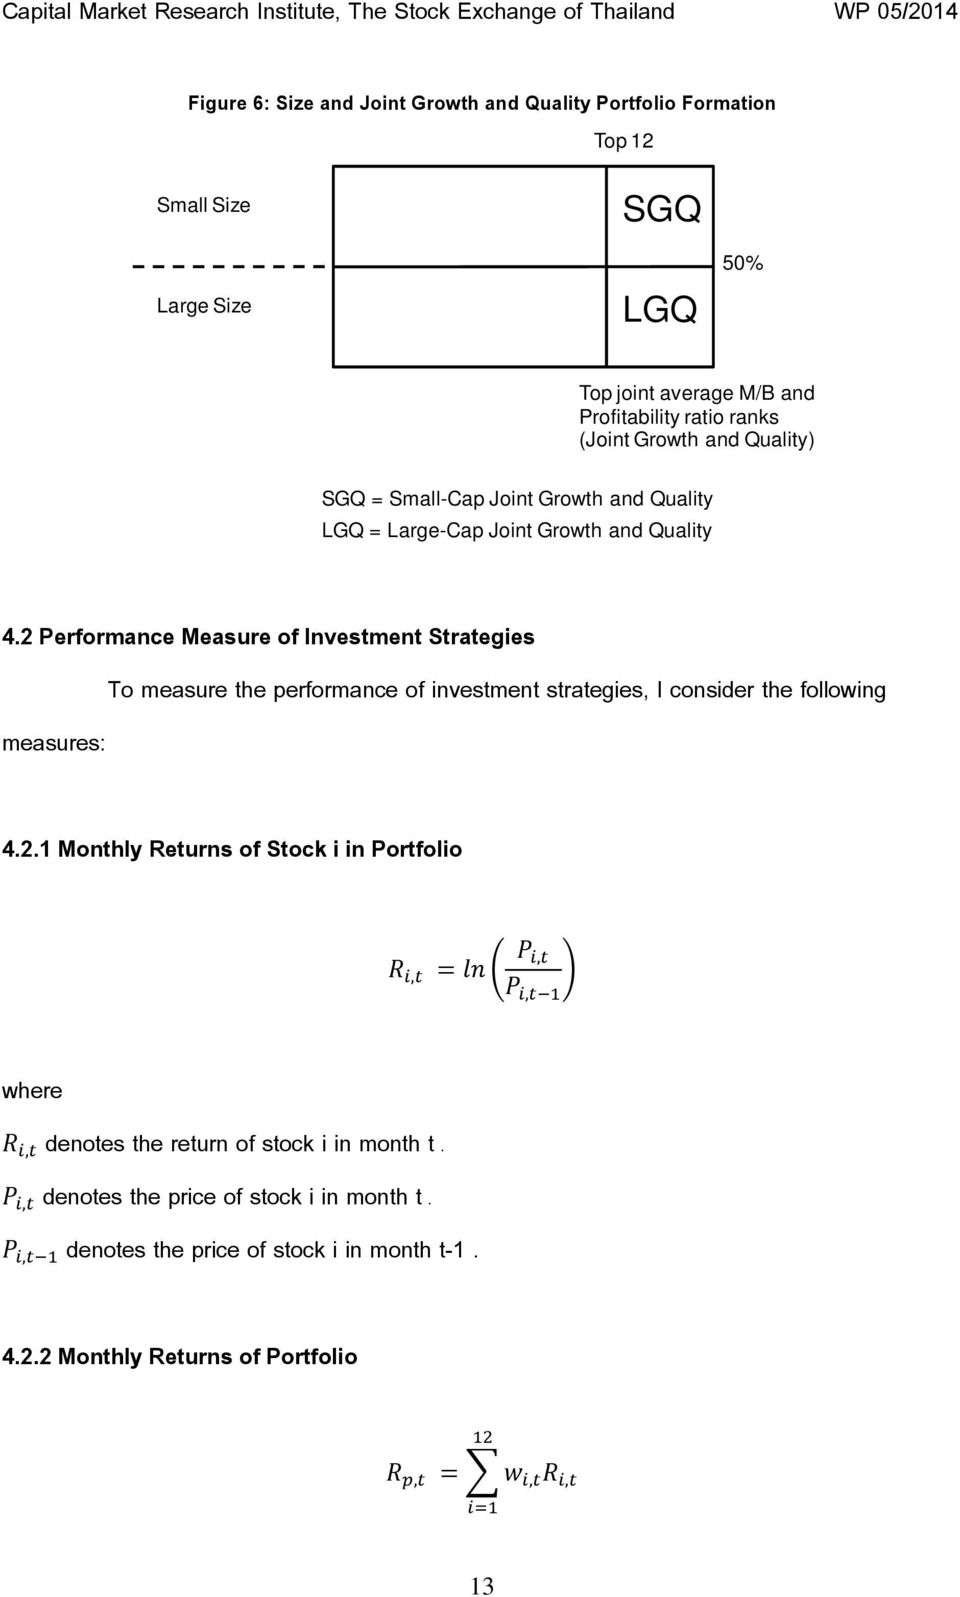 2 Performance Measure of Investment Strategies To measure the performance of investment strategies, I consider the following measures: 4.2.1 Monthly Returns of Stock i in Portfolio,,, where, denotes the return of stock i in month t.